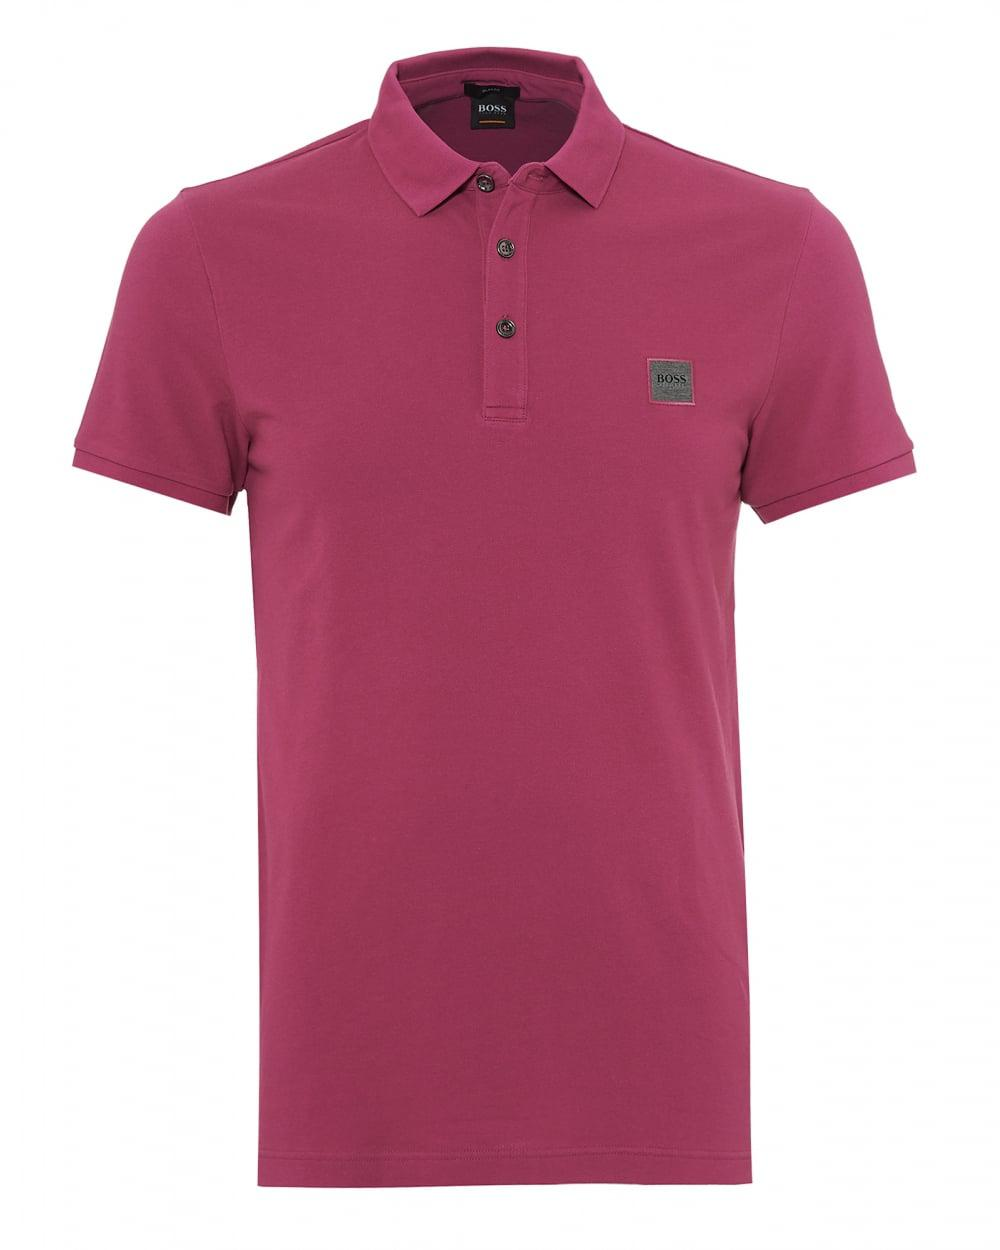 57cba60b Lyst - BOSS Passenger Polo Shirt, Slim Fit Deep Pink Polo in Pink ...